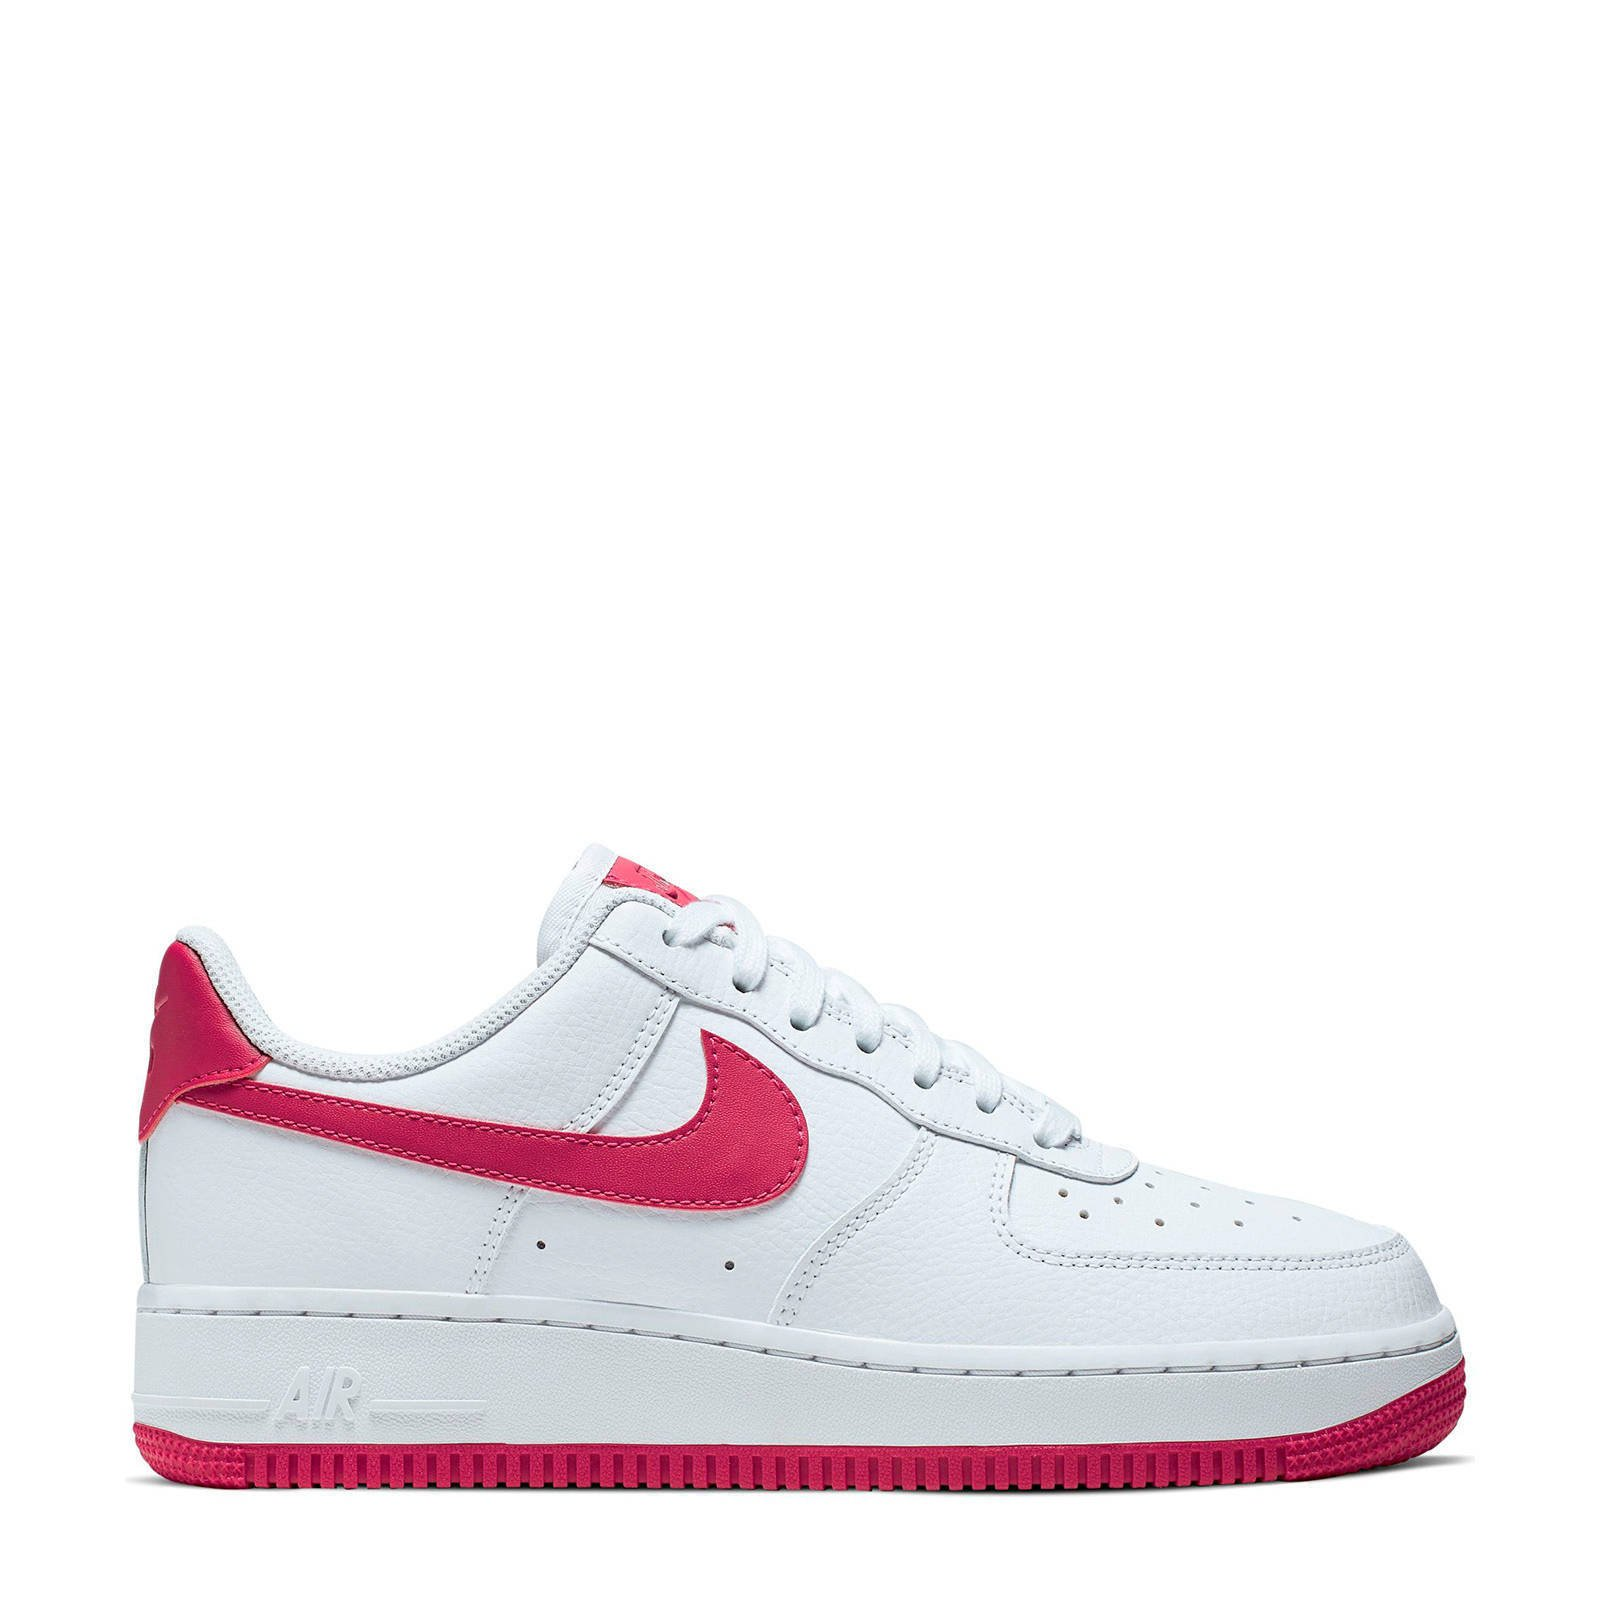 Nike Air Force 1 '07 sneakers wit/roze | wehkamp